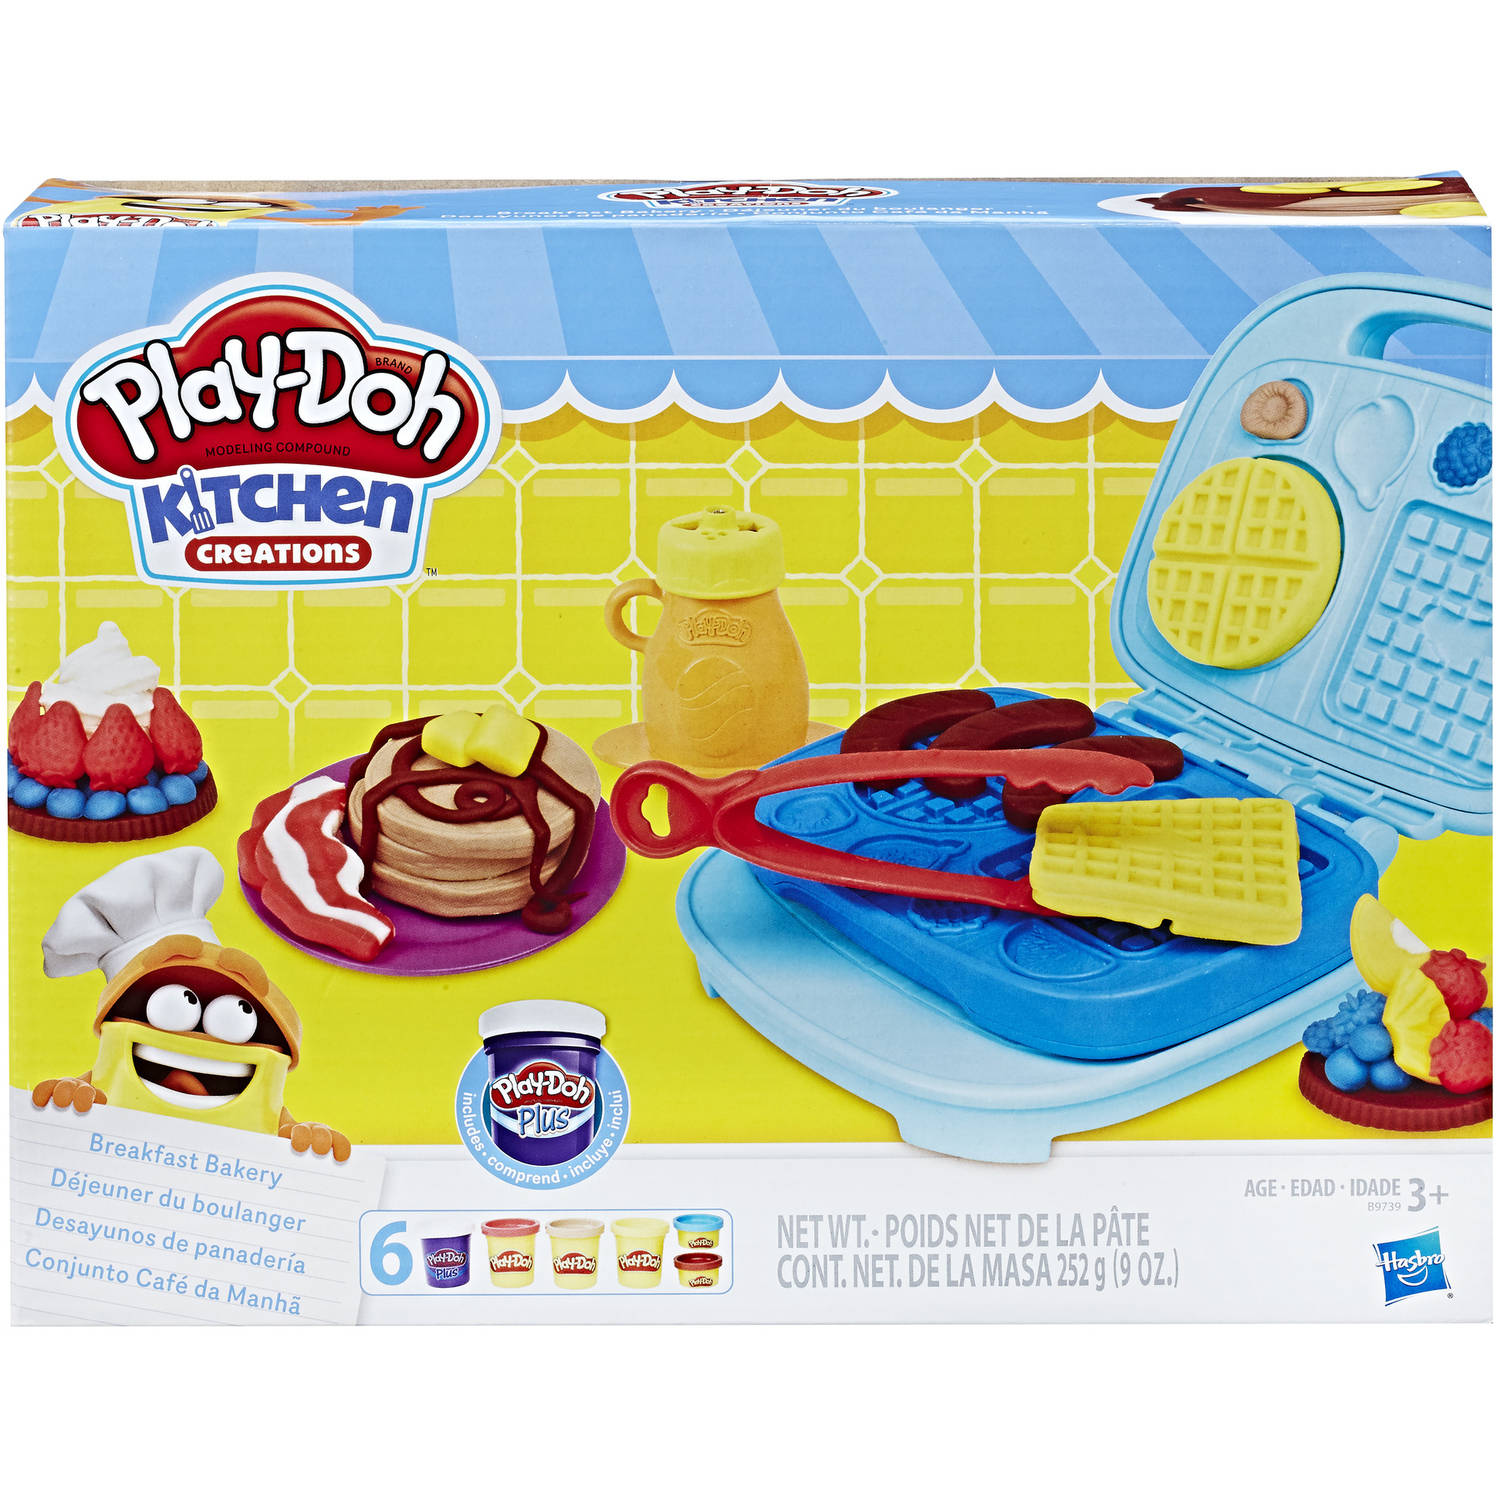 Play-Doh Kitchen Creations Breakfast Bakery Food Set